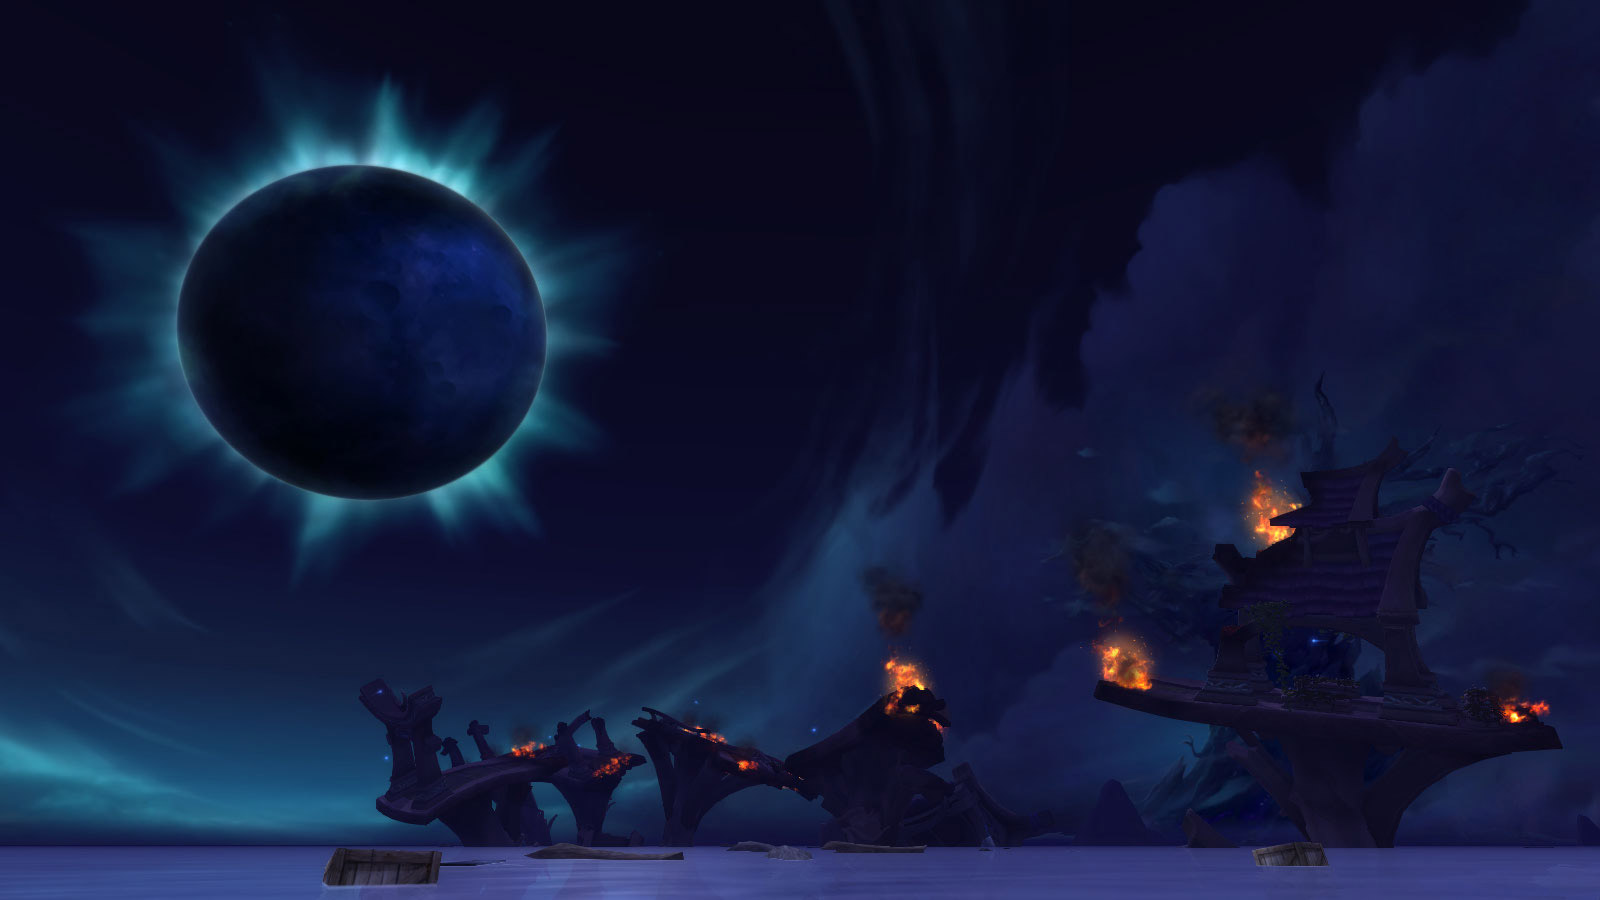 La Bataille de Sombrivage du patch 8.1 de World of Warcraft